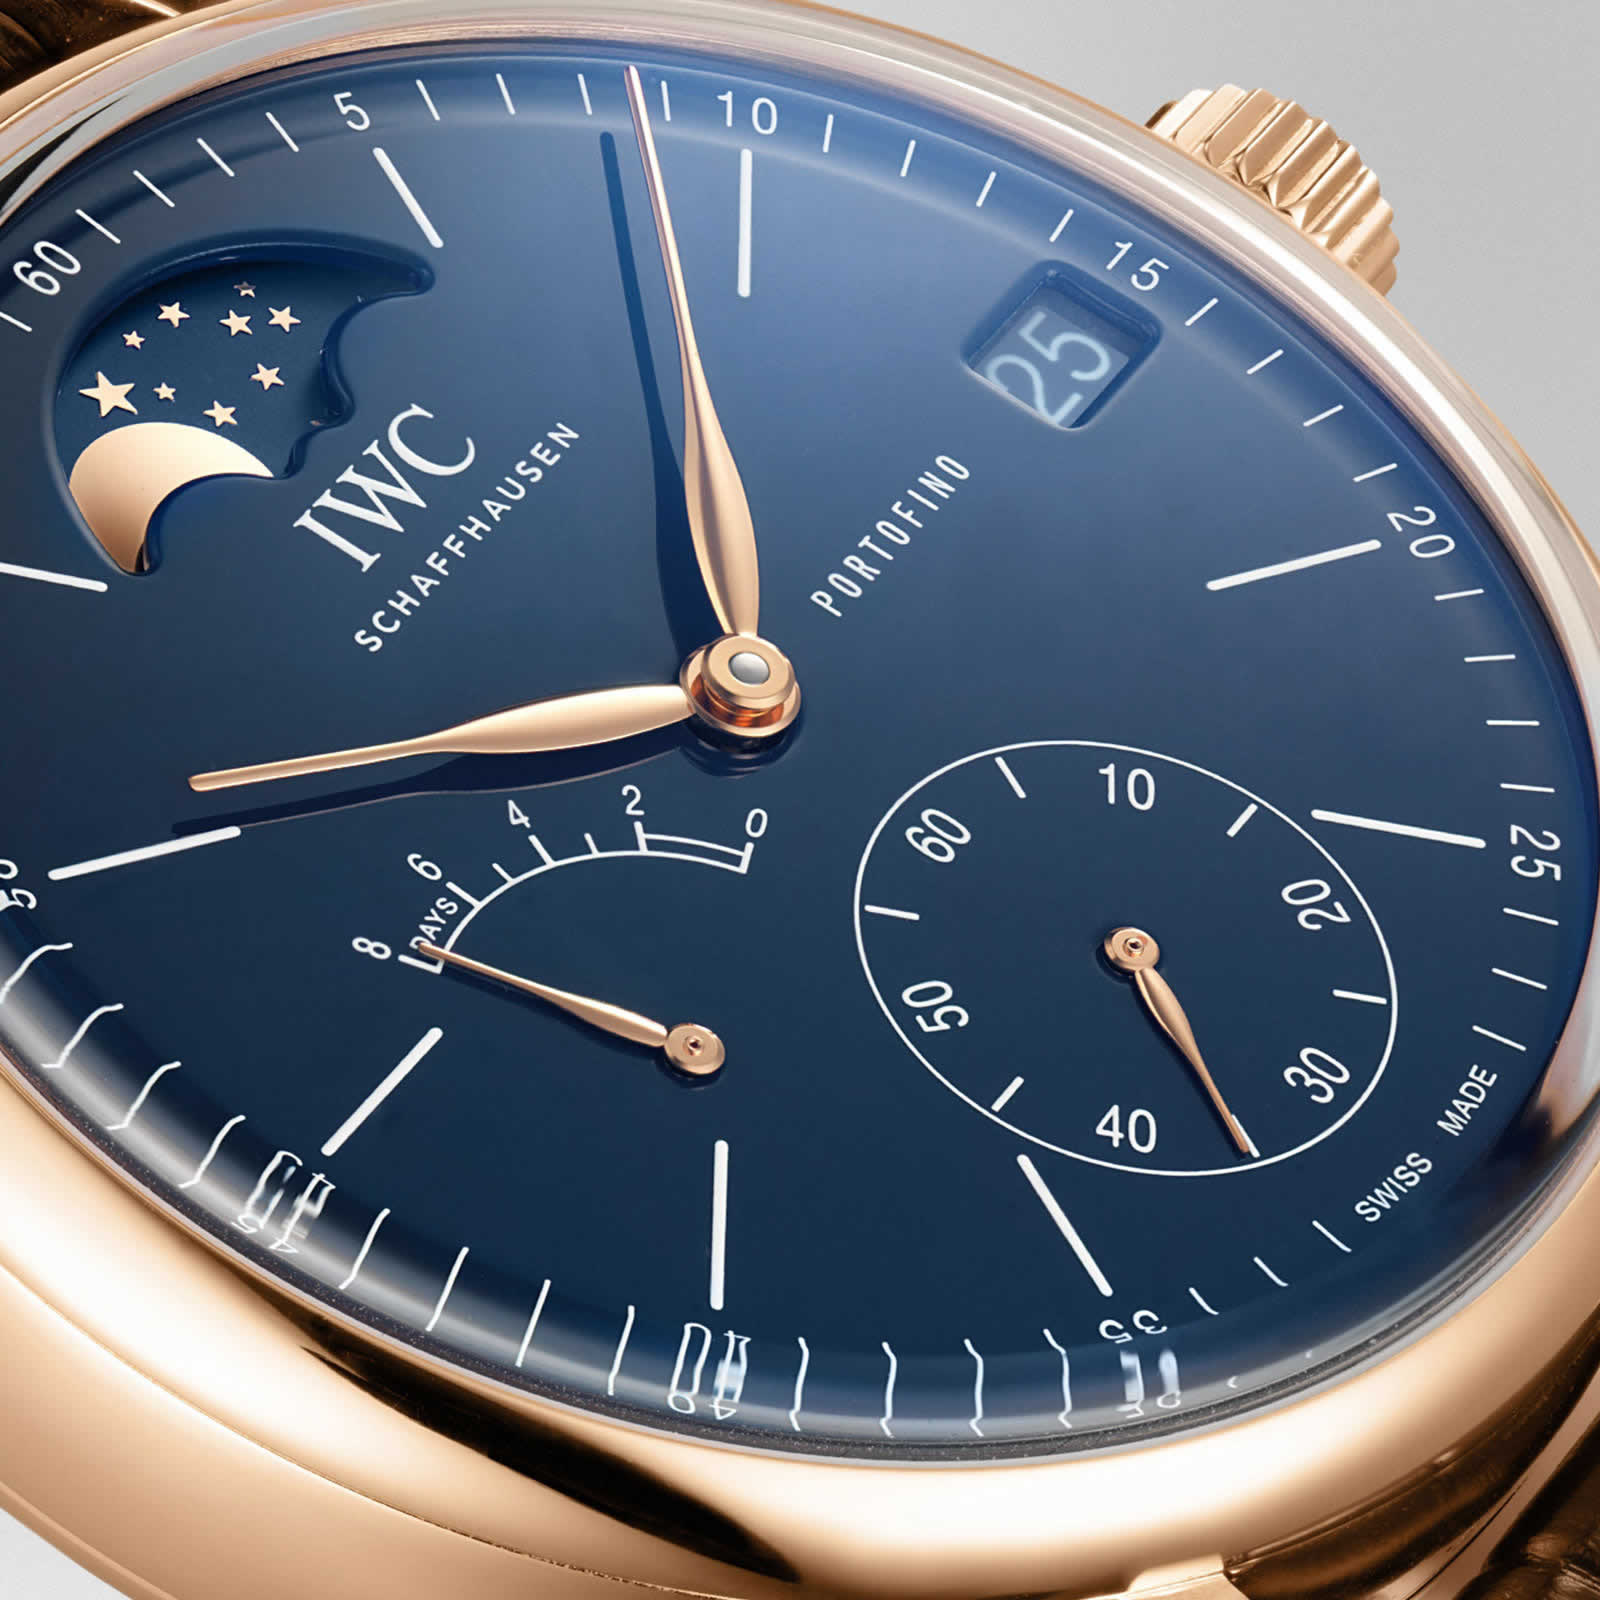 iwc-Portugieser-Hand-Wound-Eight-Days-Edition-150-Years-.jpg